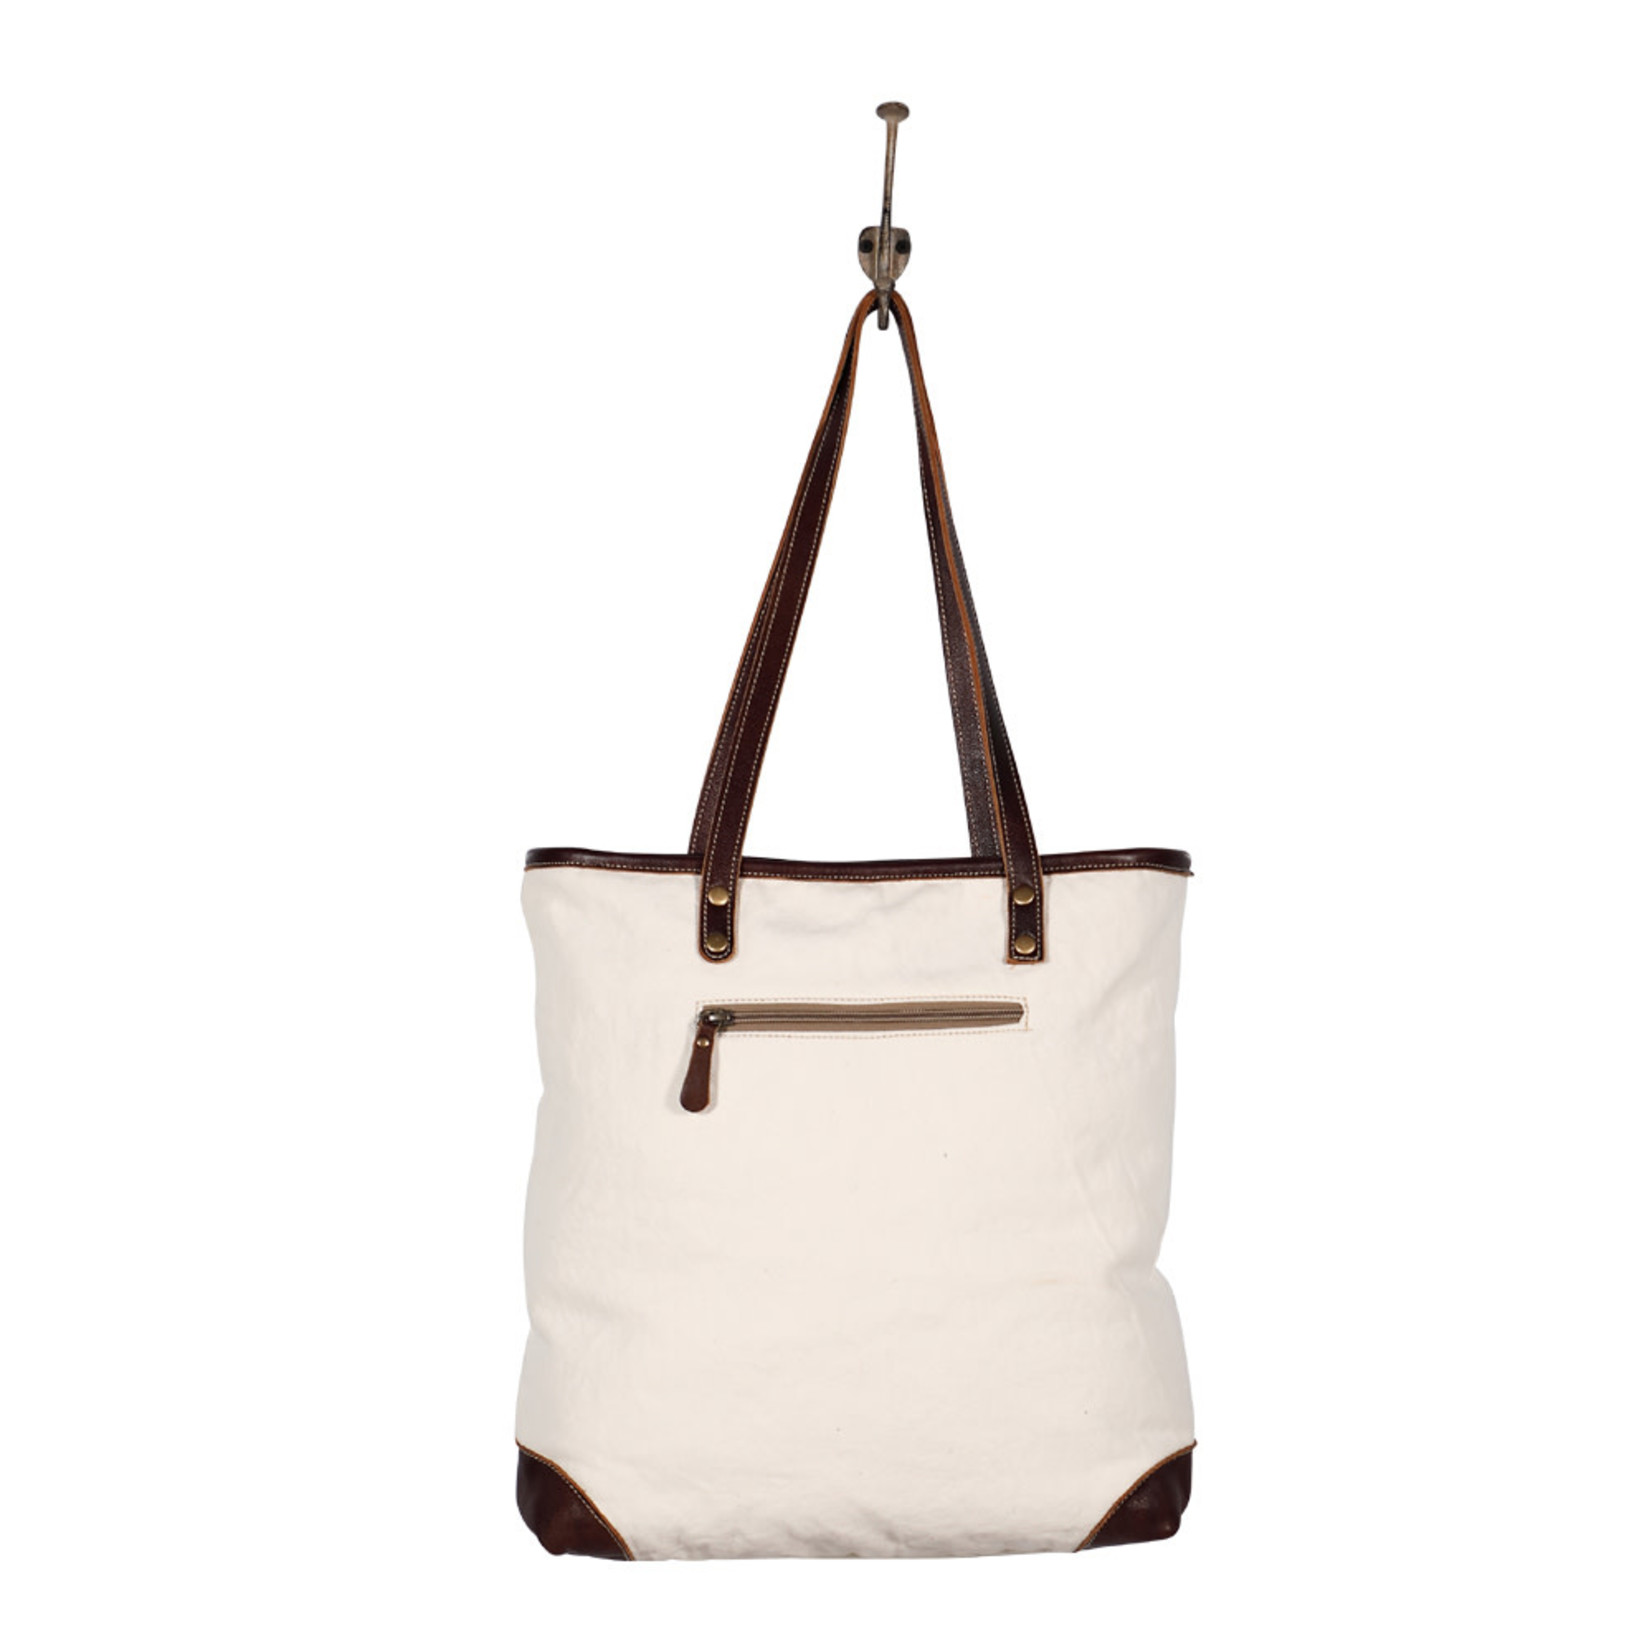 Myra Bags S-1959 Vogue Tote Bag